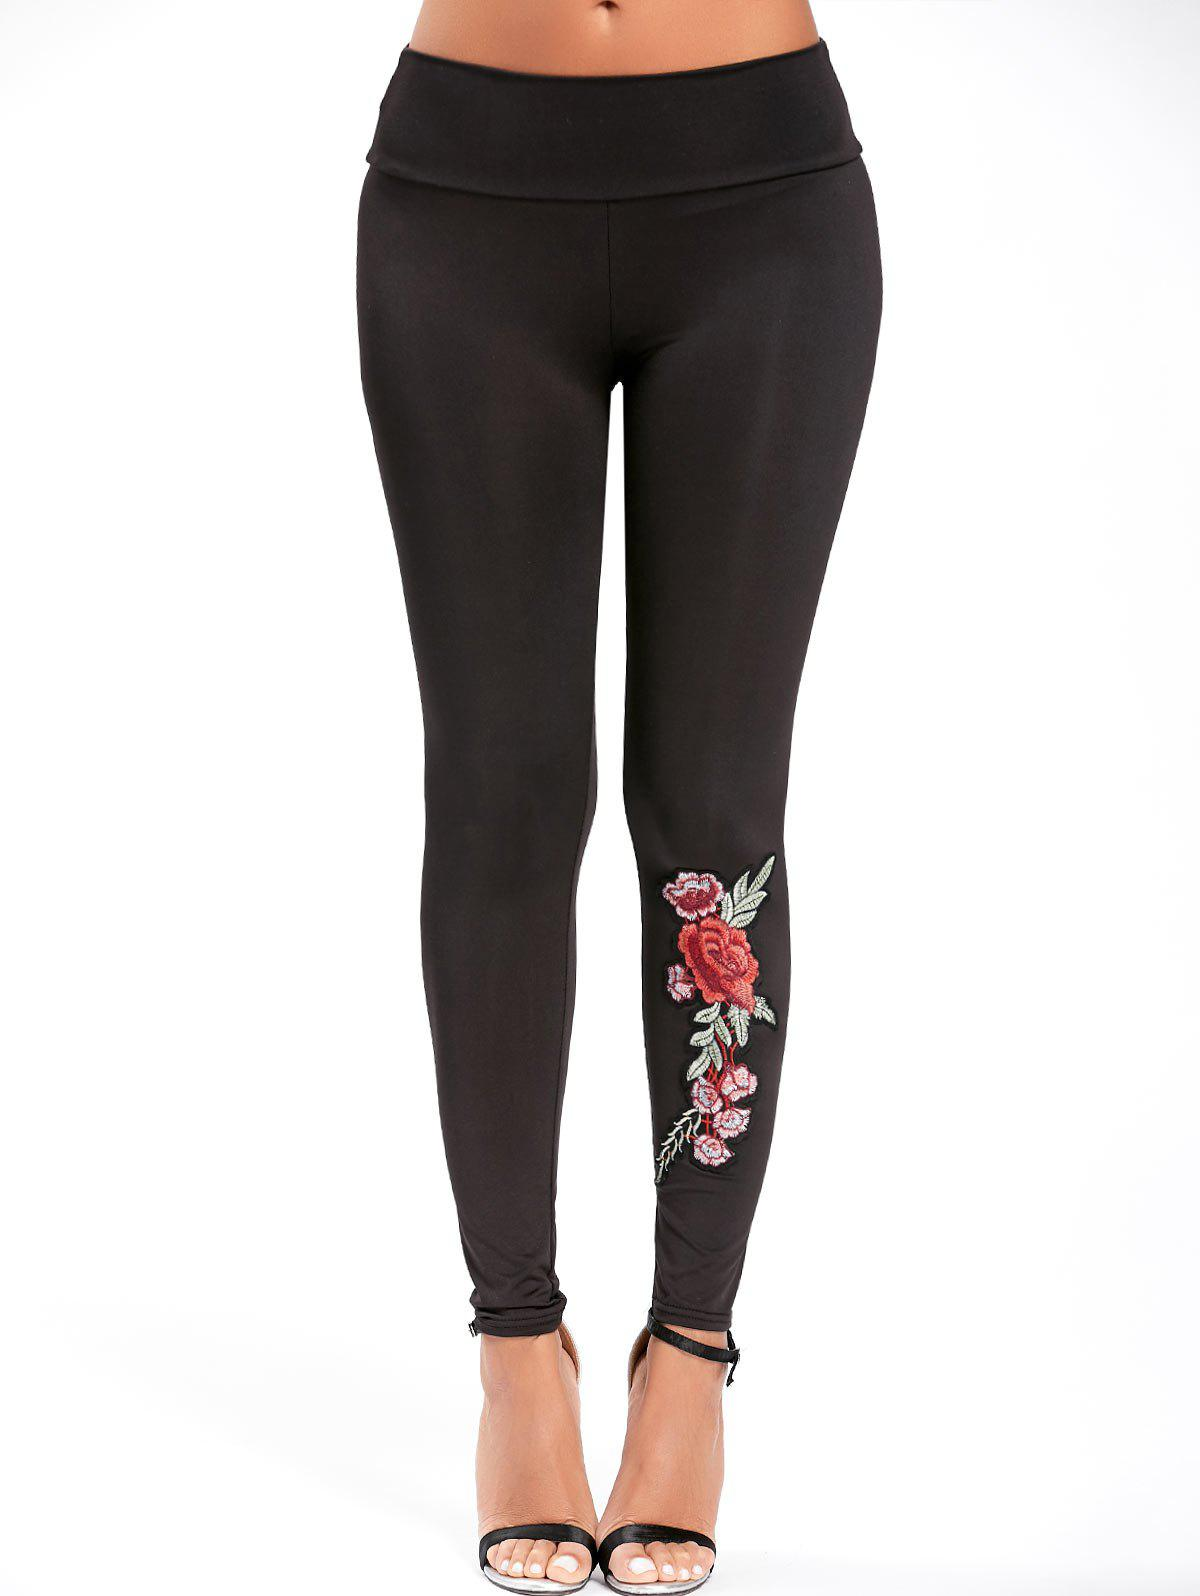 High Waisted Embroidered LeggingsWOMEN<br><br>Size: S; Color: BLACK; Style: Fashion; Material: Cotton,Polyester; Waist Type: High; Pattern Type: Floral; Elasticity: Elastic; Weight: 0.2000kg; Package Contents: 1 x Leggings;